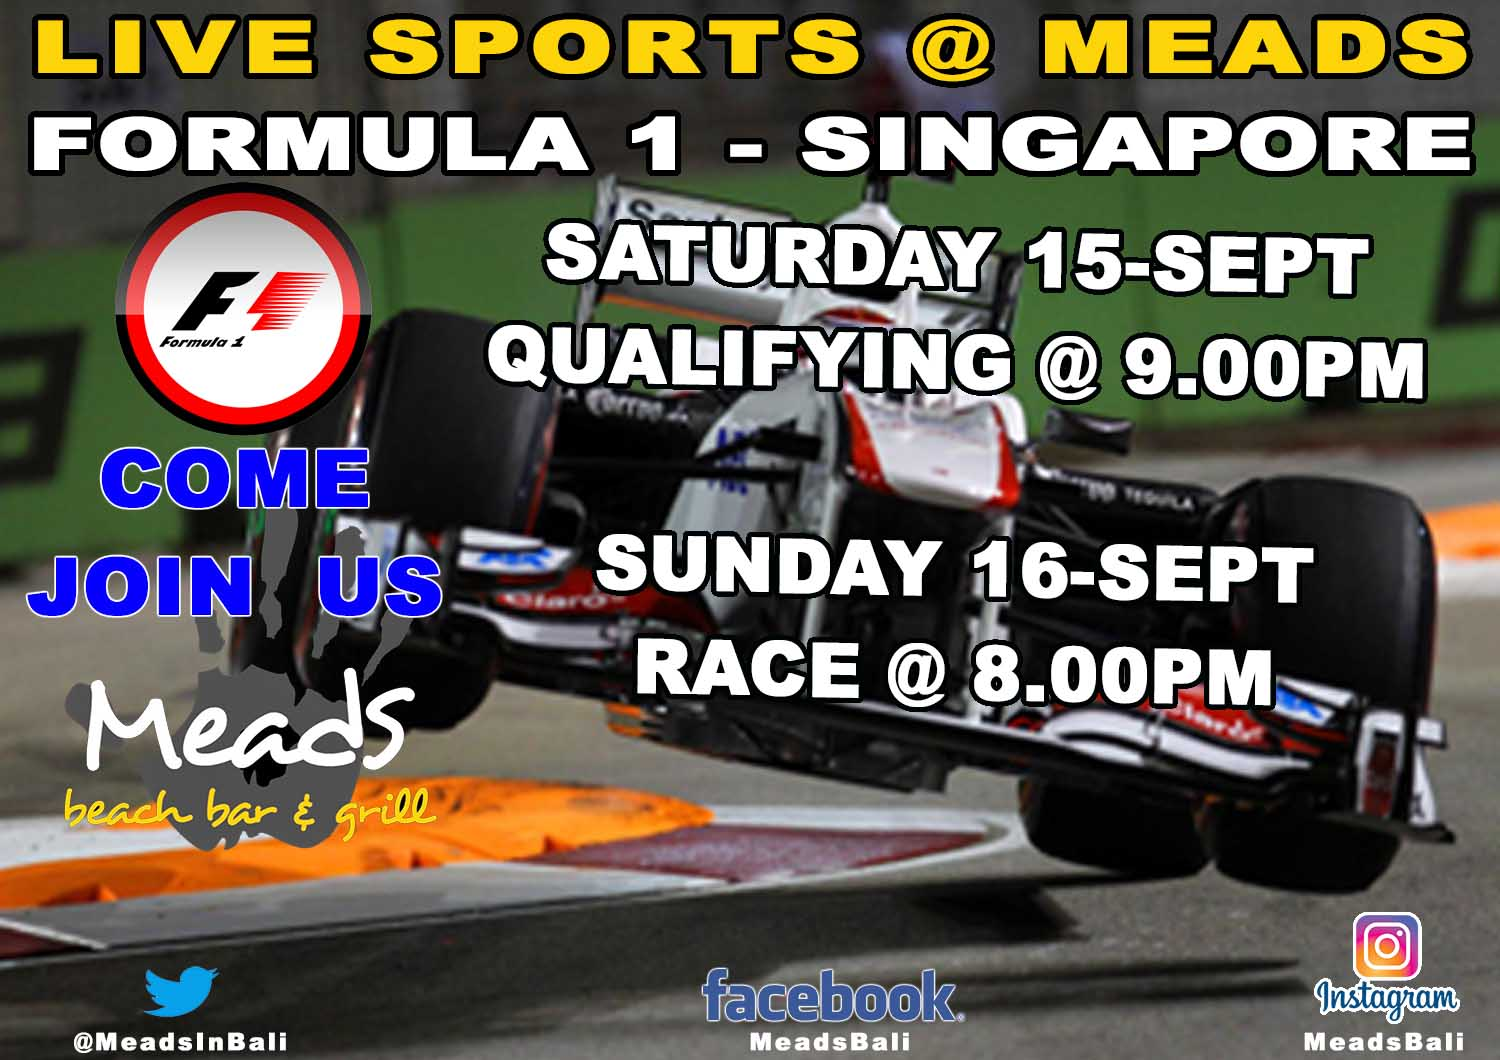 Meads in Bali Sports Formula 1